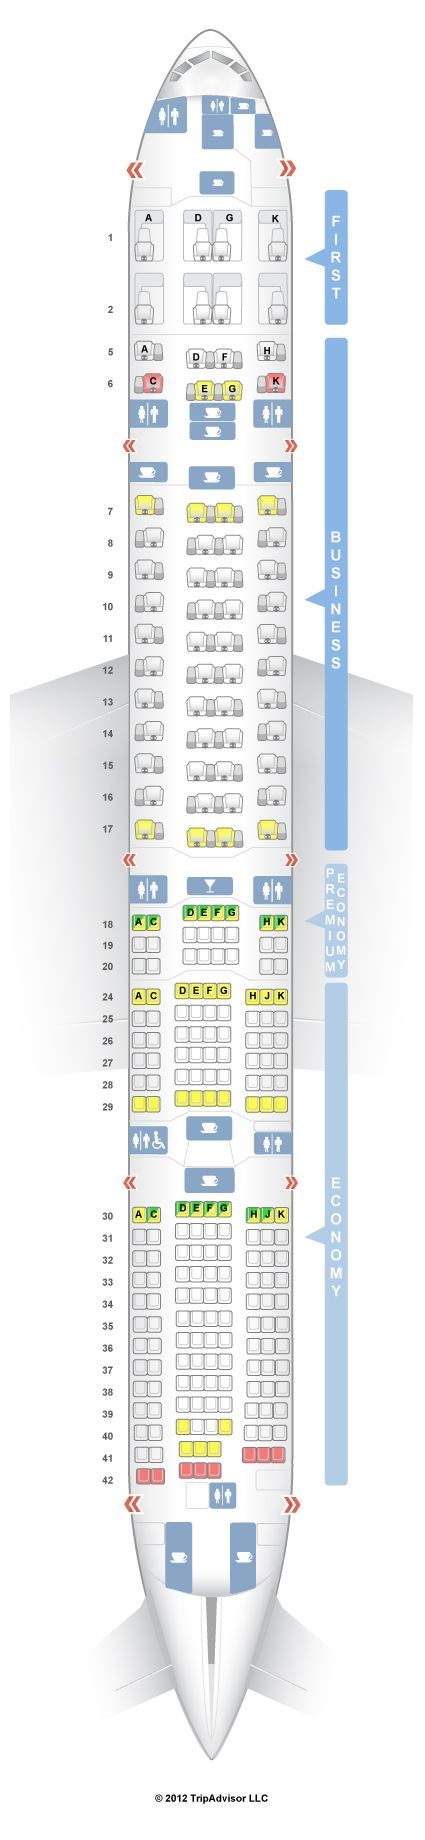 Best 25 boeing 777 300 seating ideas only on pinterest for Plan cabine 777 300er